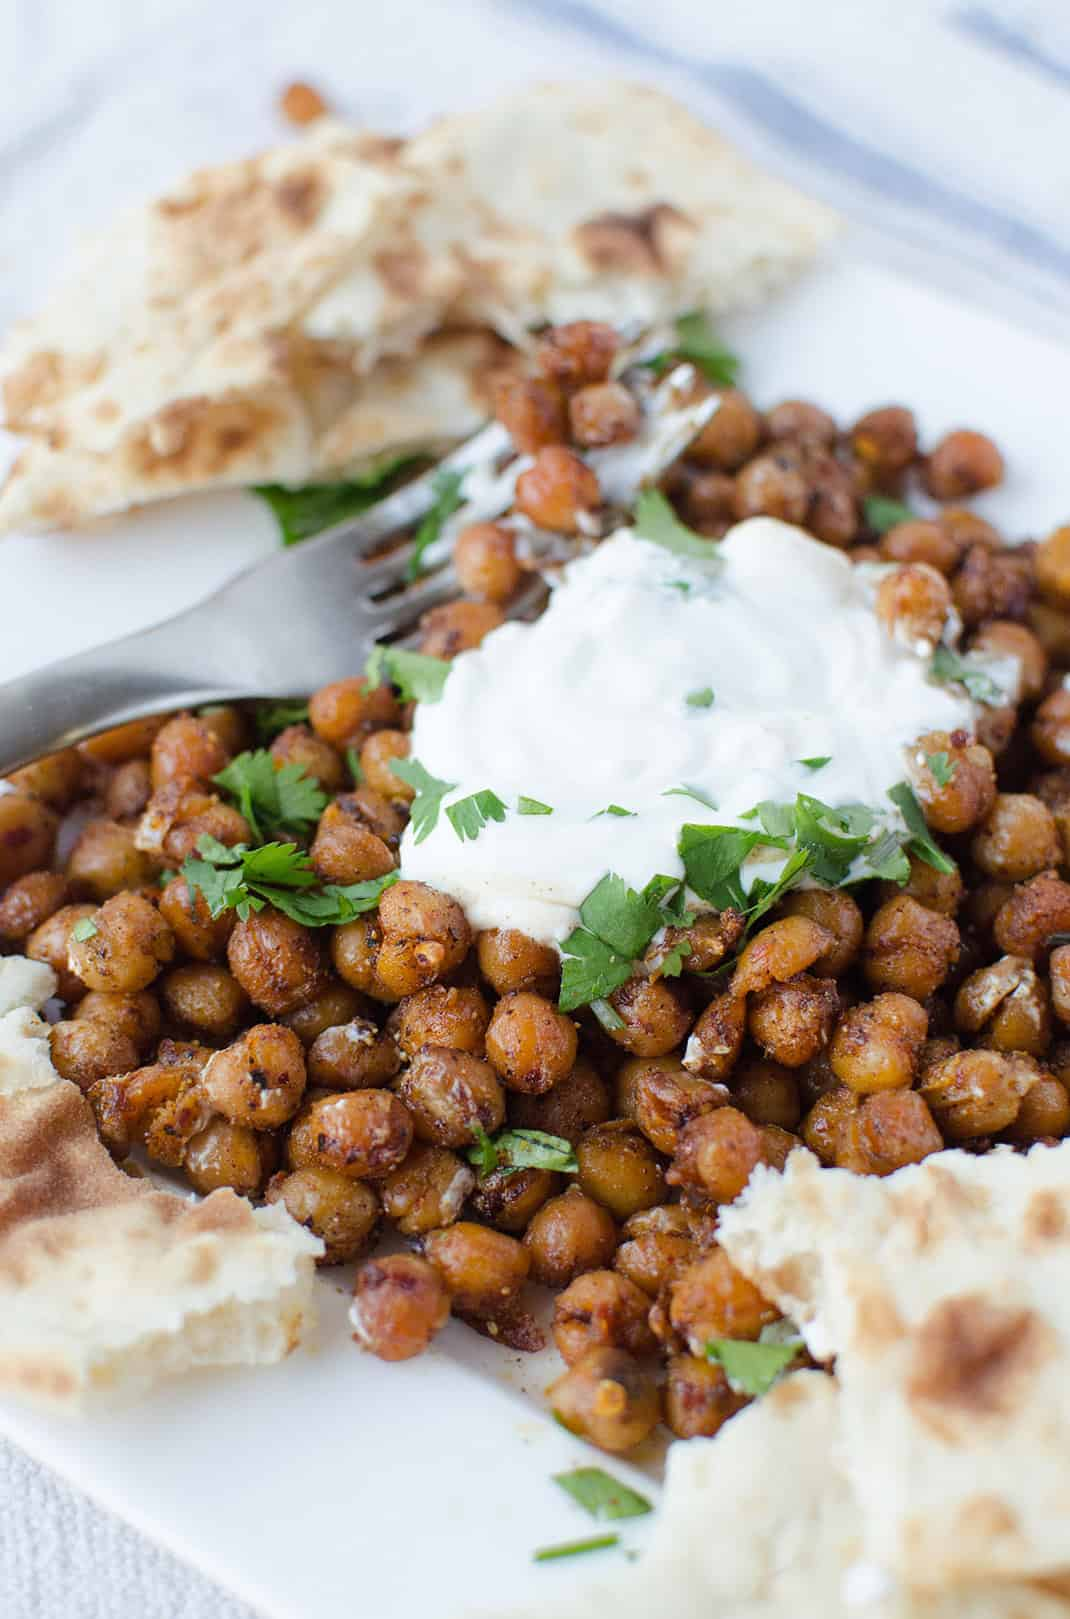 Dinner is ready in just 15 minutes! Roasted Indian chickpeas with tamarind sauce, yogurt and cilantro. Healthy, high protein and easy!   www.delishknowledge.com